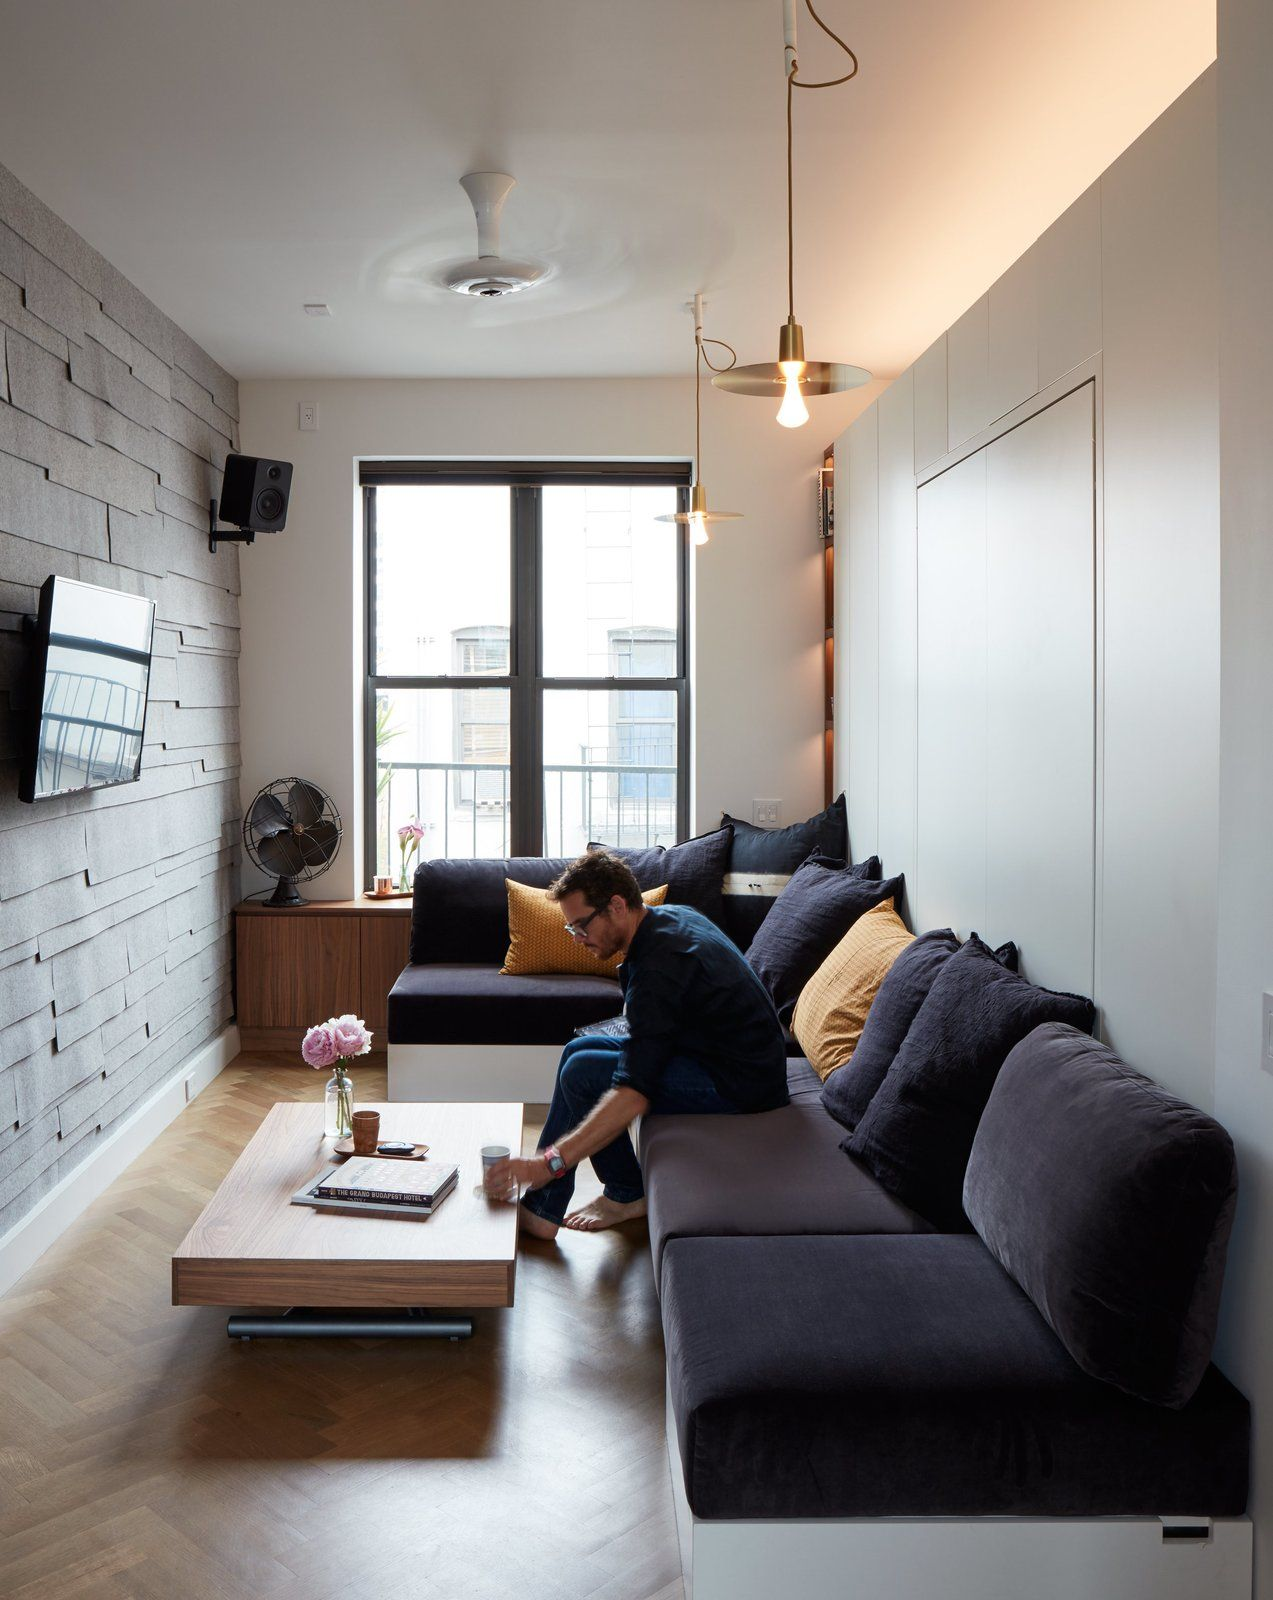 10 Best Dwell Studios And Modern Apartments Small Apartment Living Room Small Living Room Decor Small Living Room Design